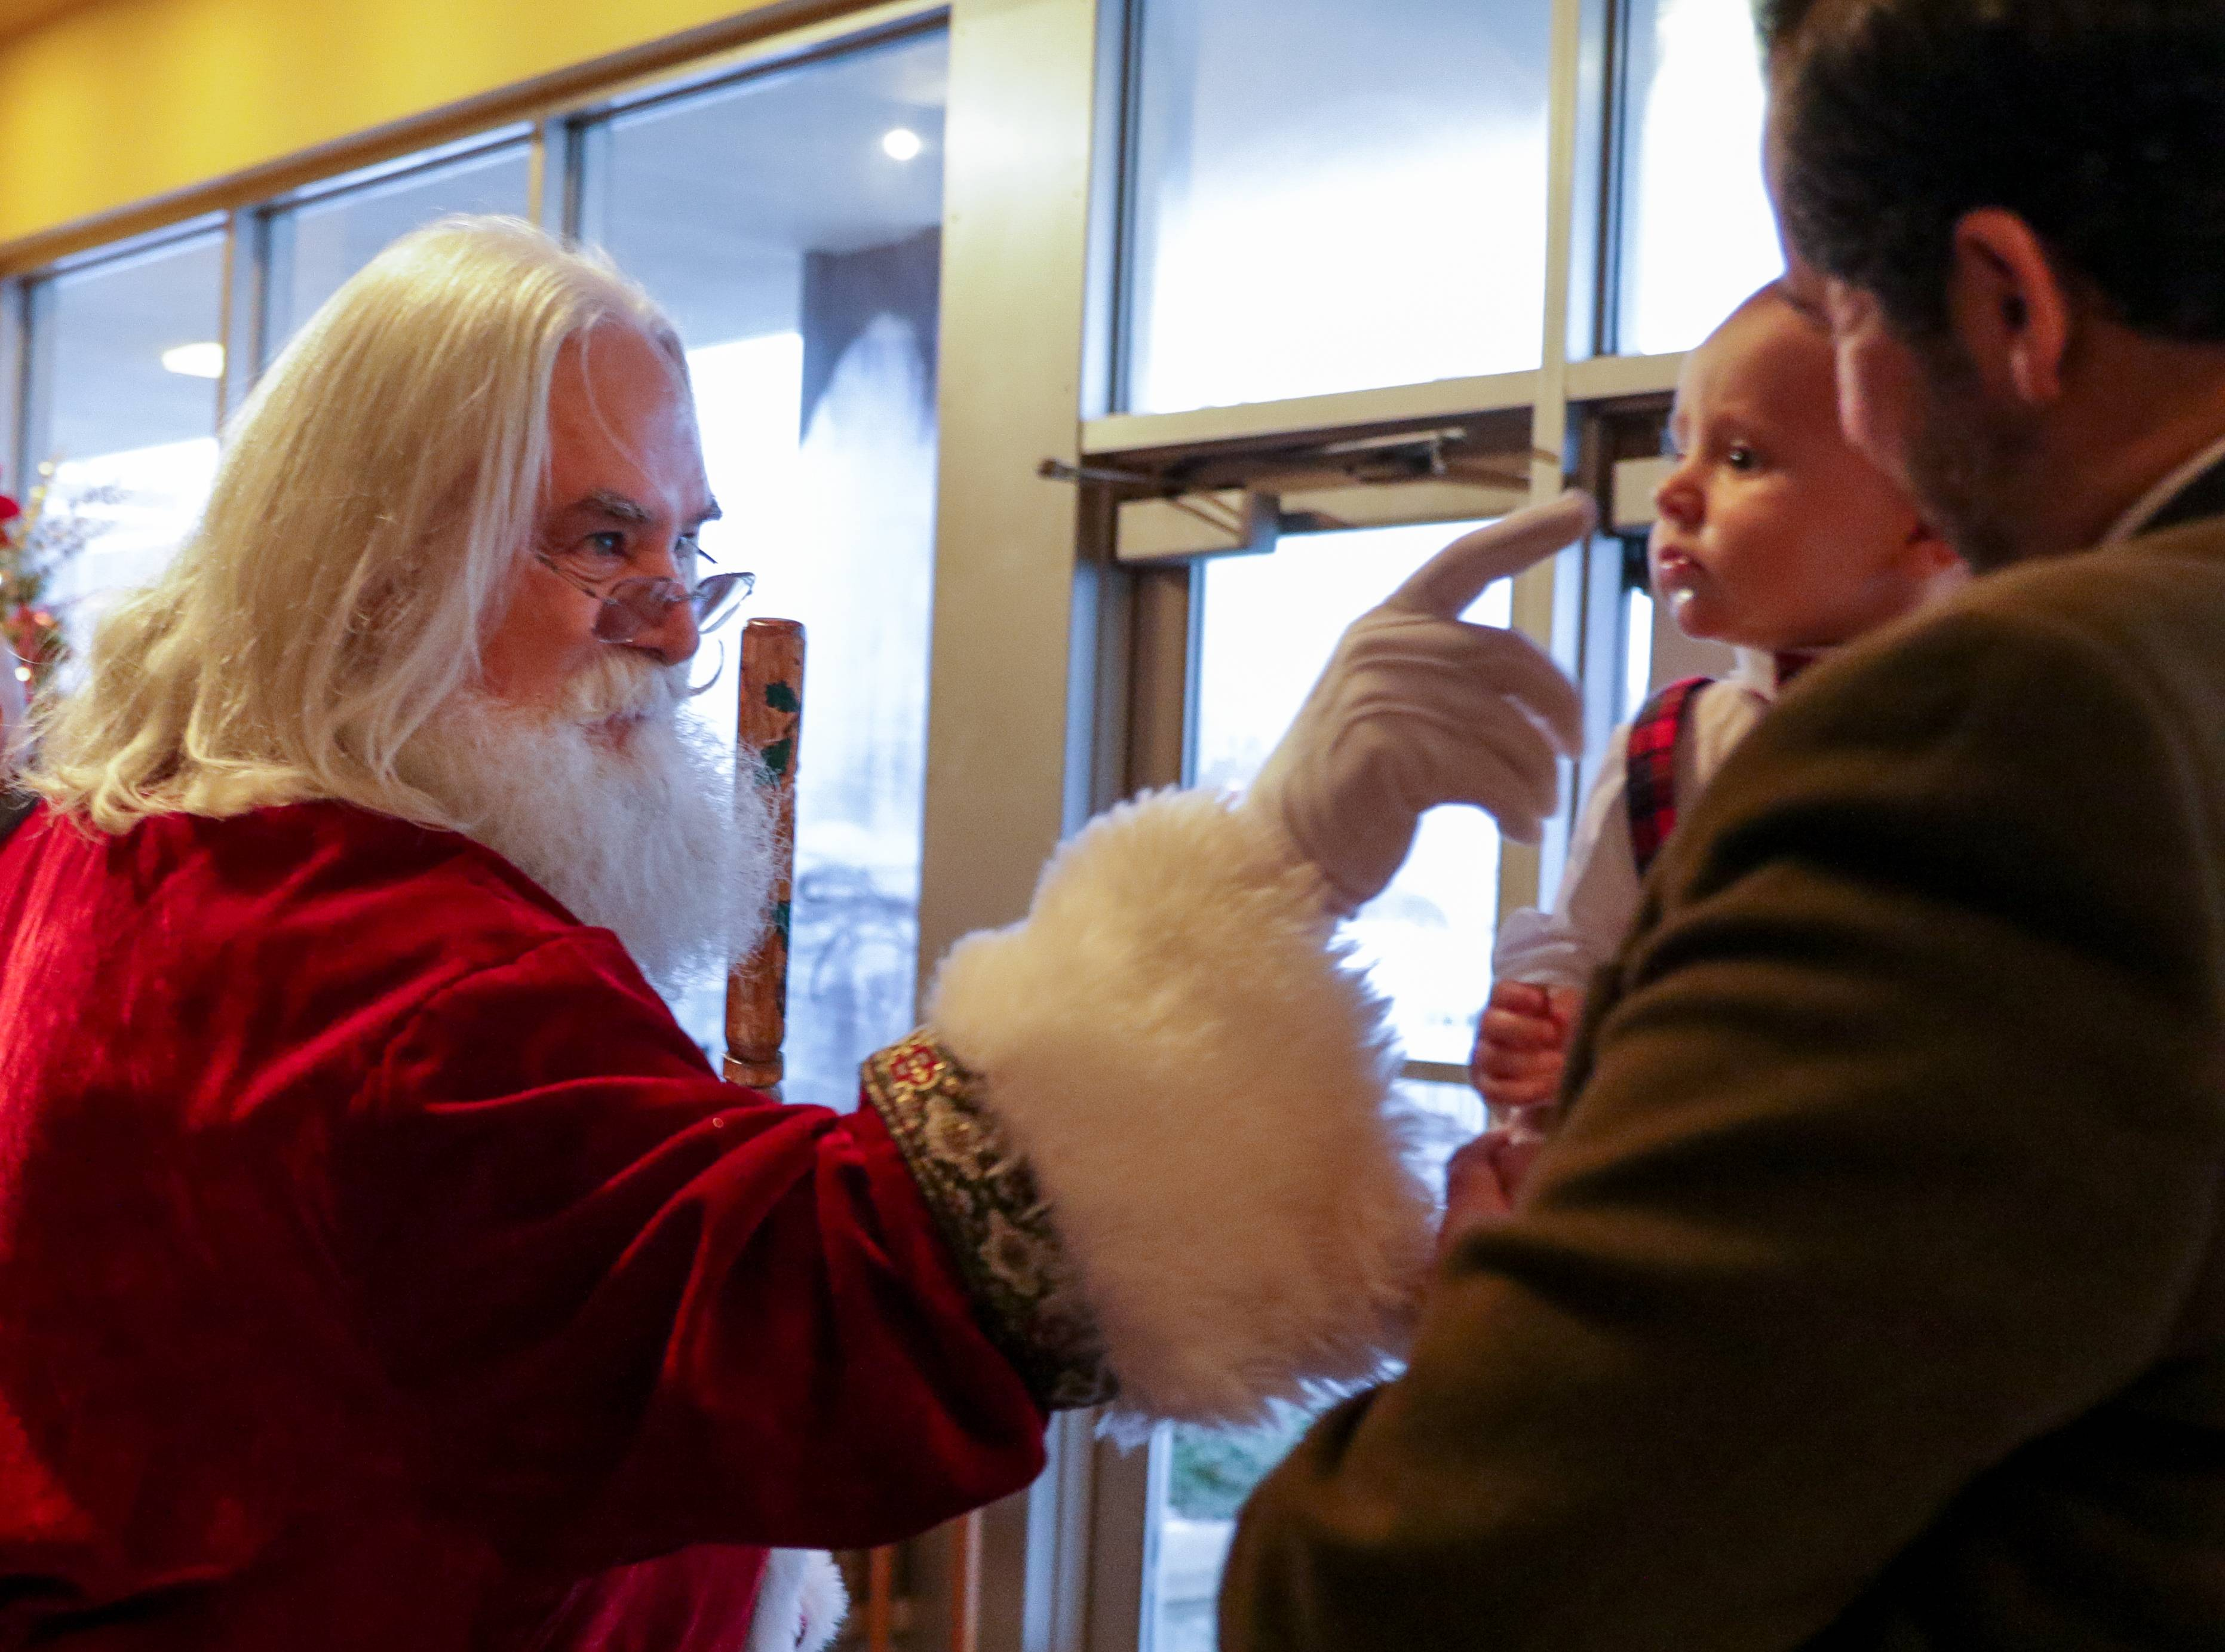 Santa greets Peter Messacar, with his son Colin, five months, after the Children's Christmas Mass at Immaculate Conception Church in Elmhurst on Sunday. Santa is played by Bob Hildreth, of Elgin and this is the fourth year of being part of children's service.